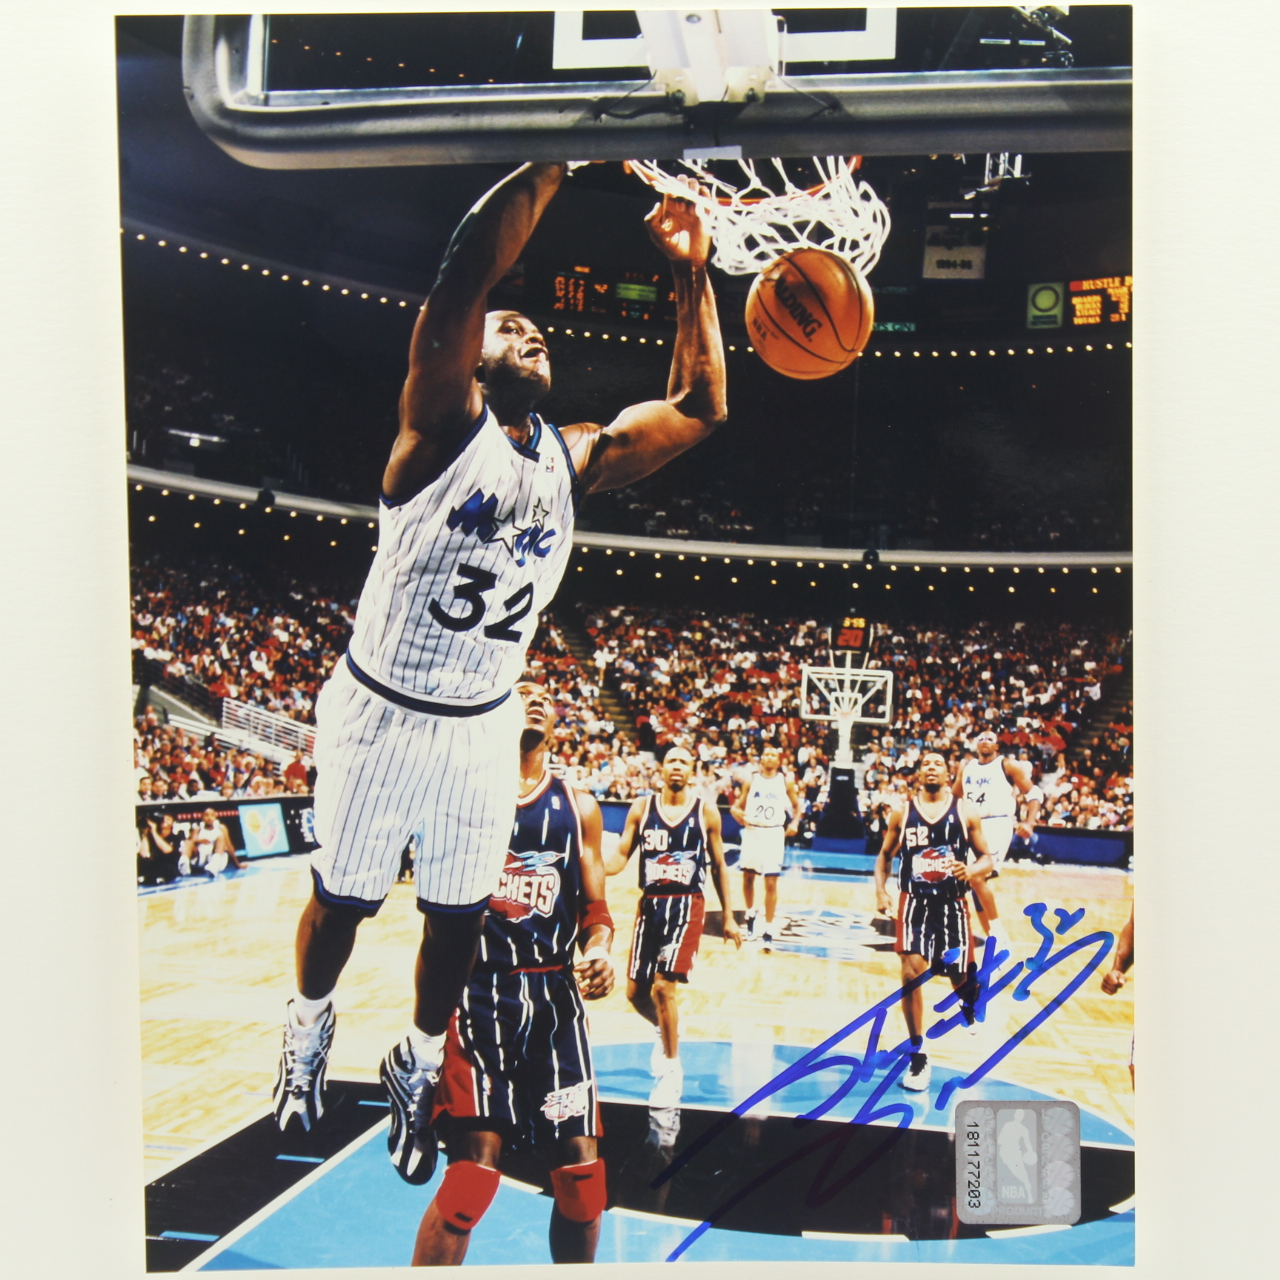 Photos, Shaquille O'Neal, Autographed, Incl. CoA